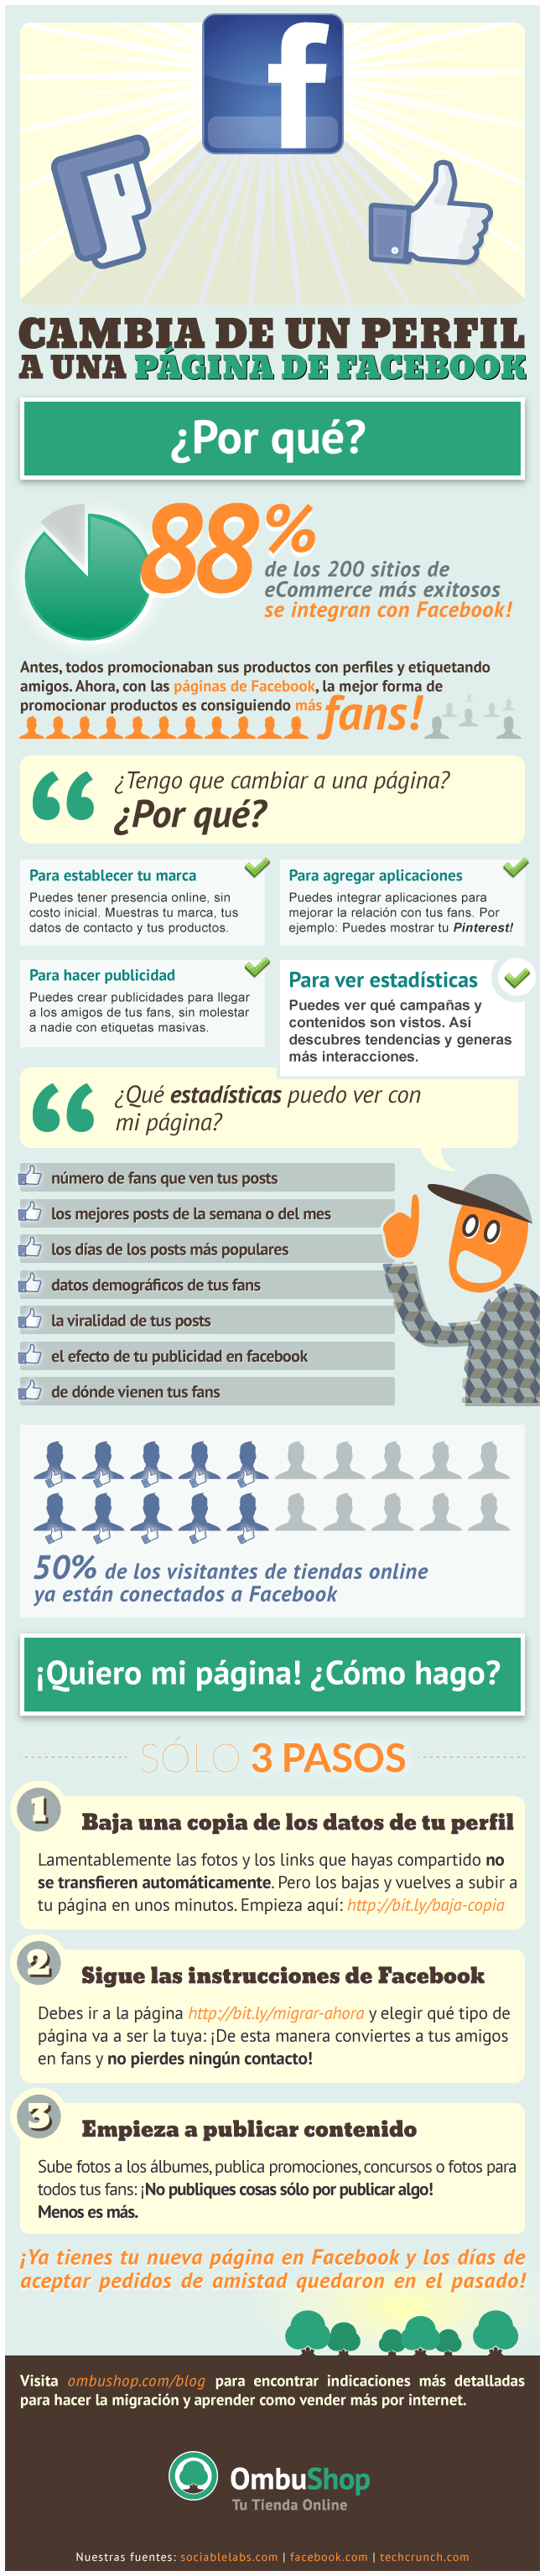 infografía-facebook-fan-page